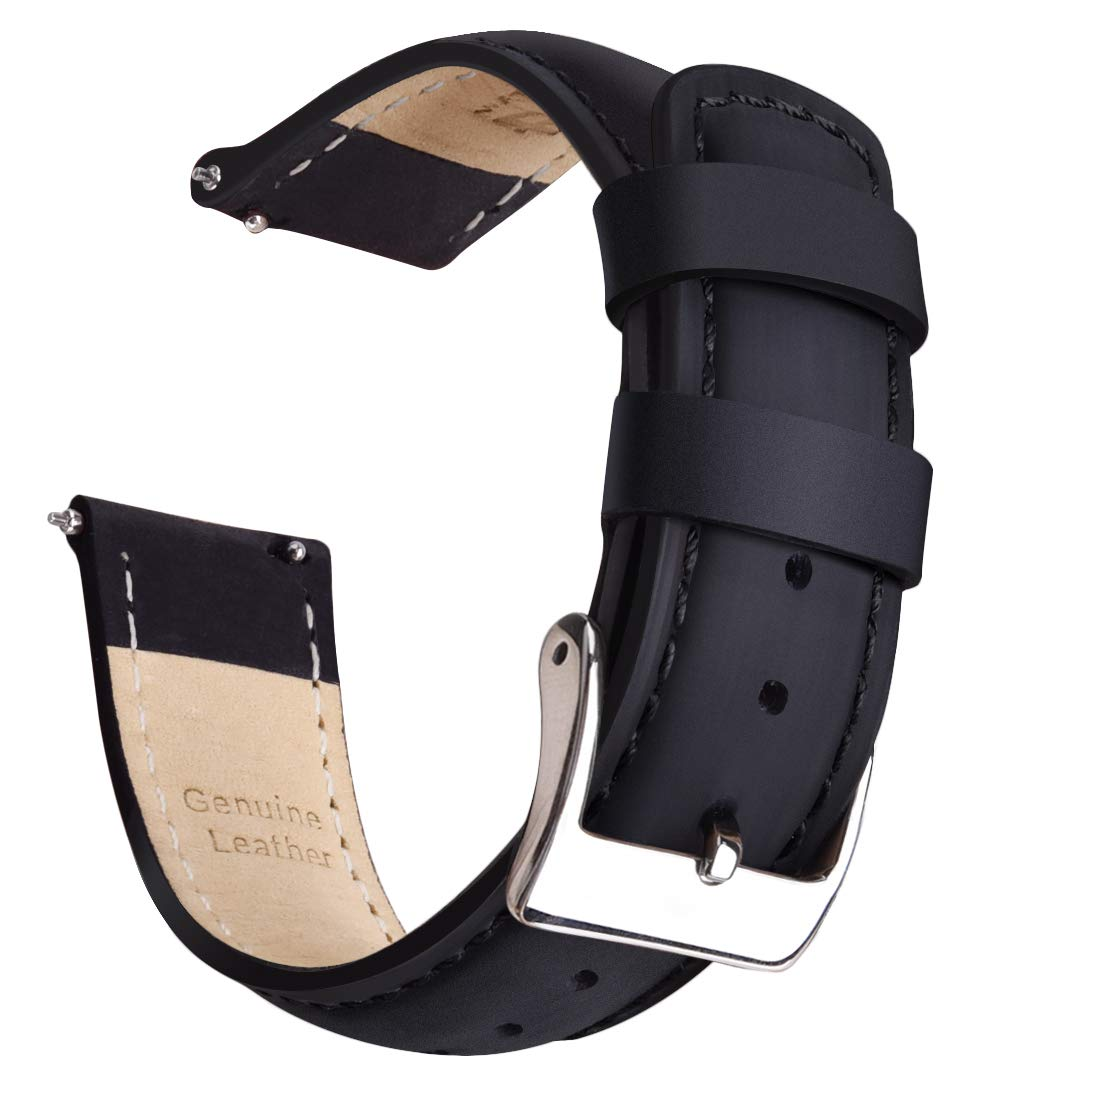 Ritche Quick Release Leather Watch Bands-18mm 20mm 22mm Top Grain Leather Watch Strap